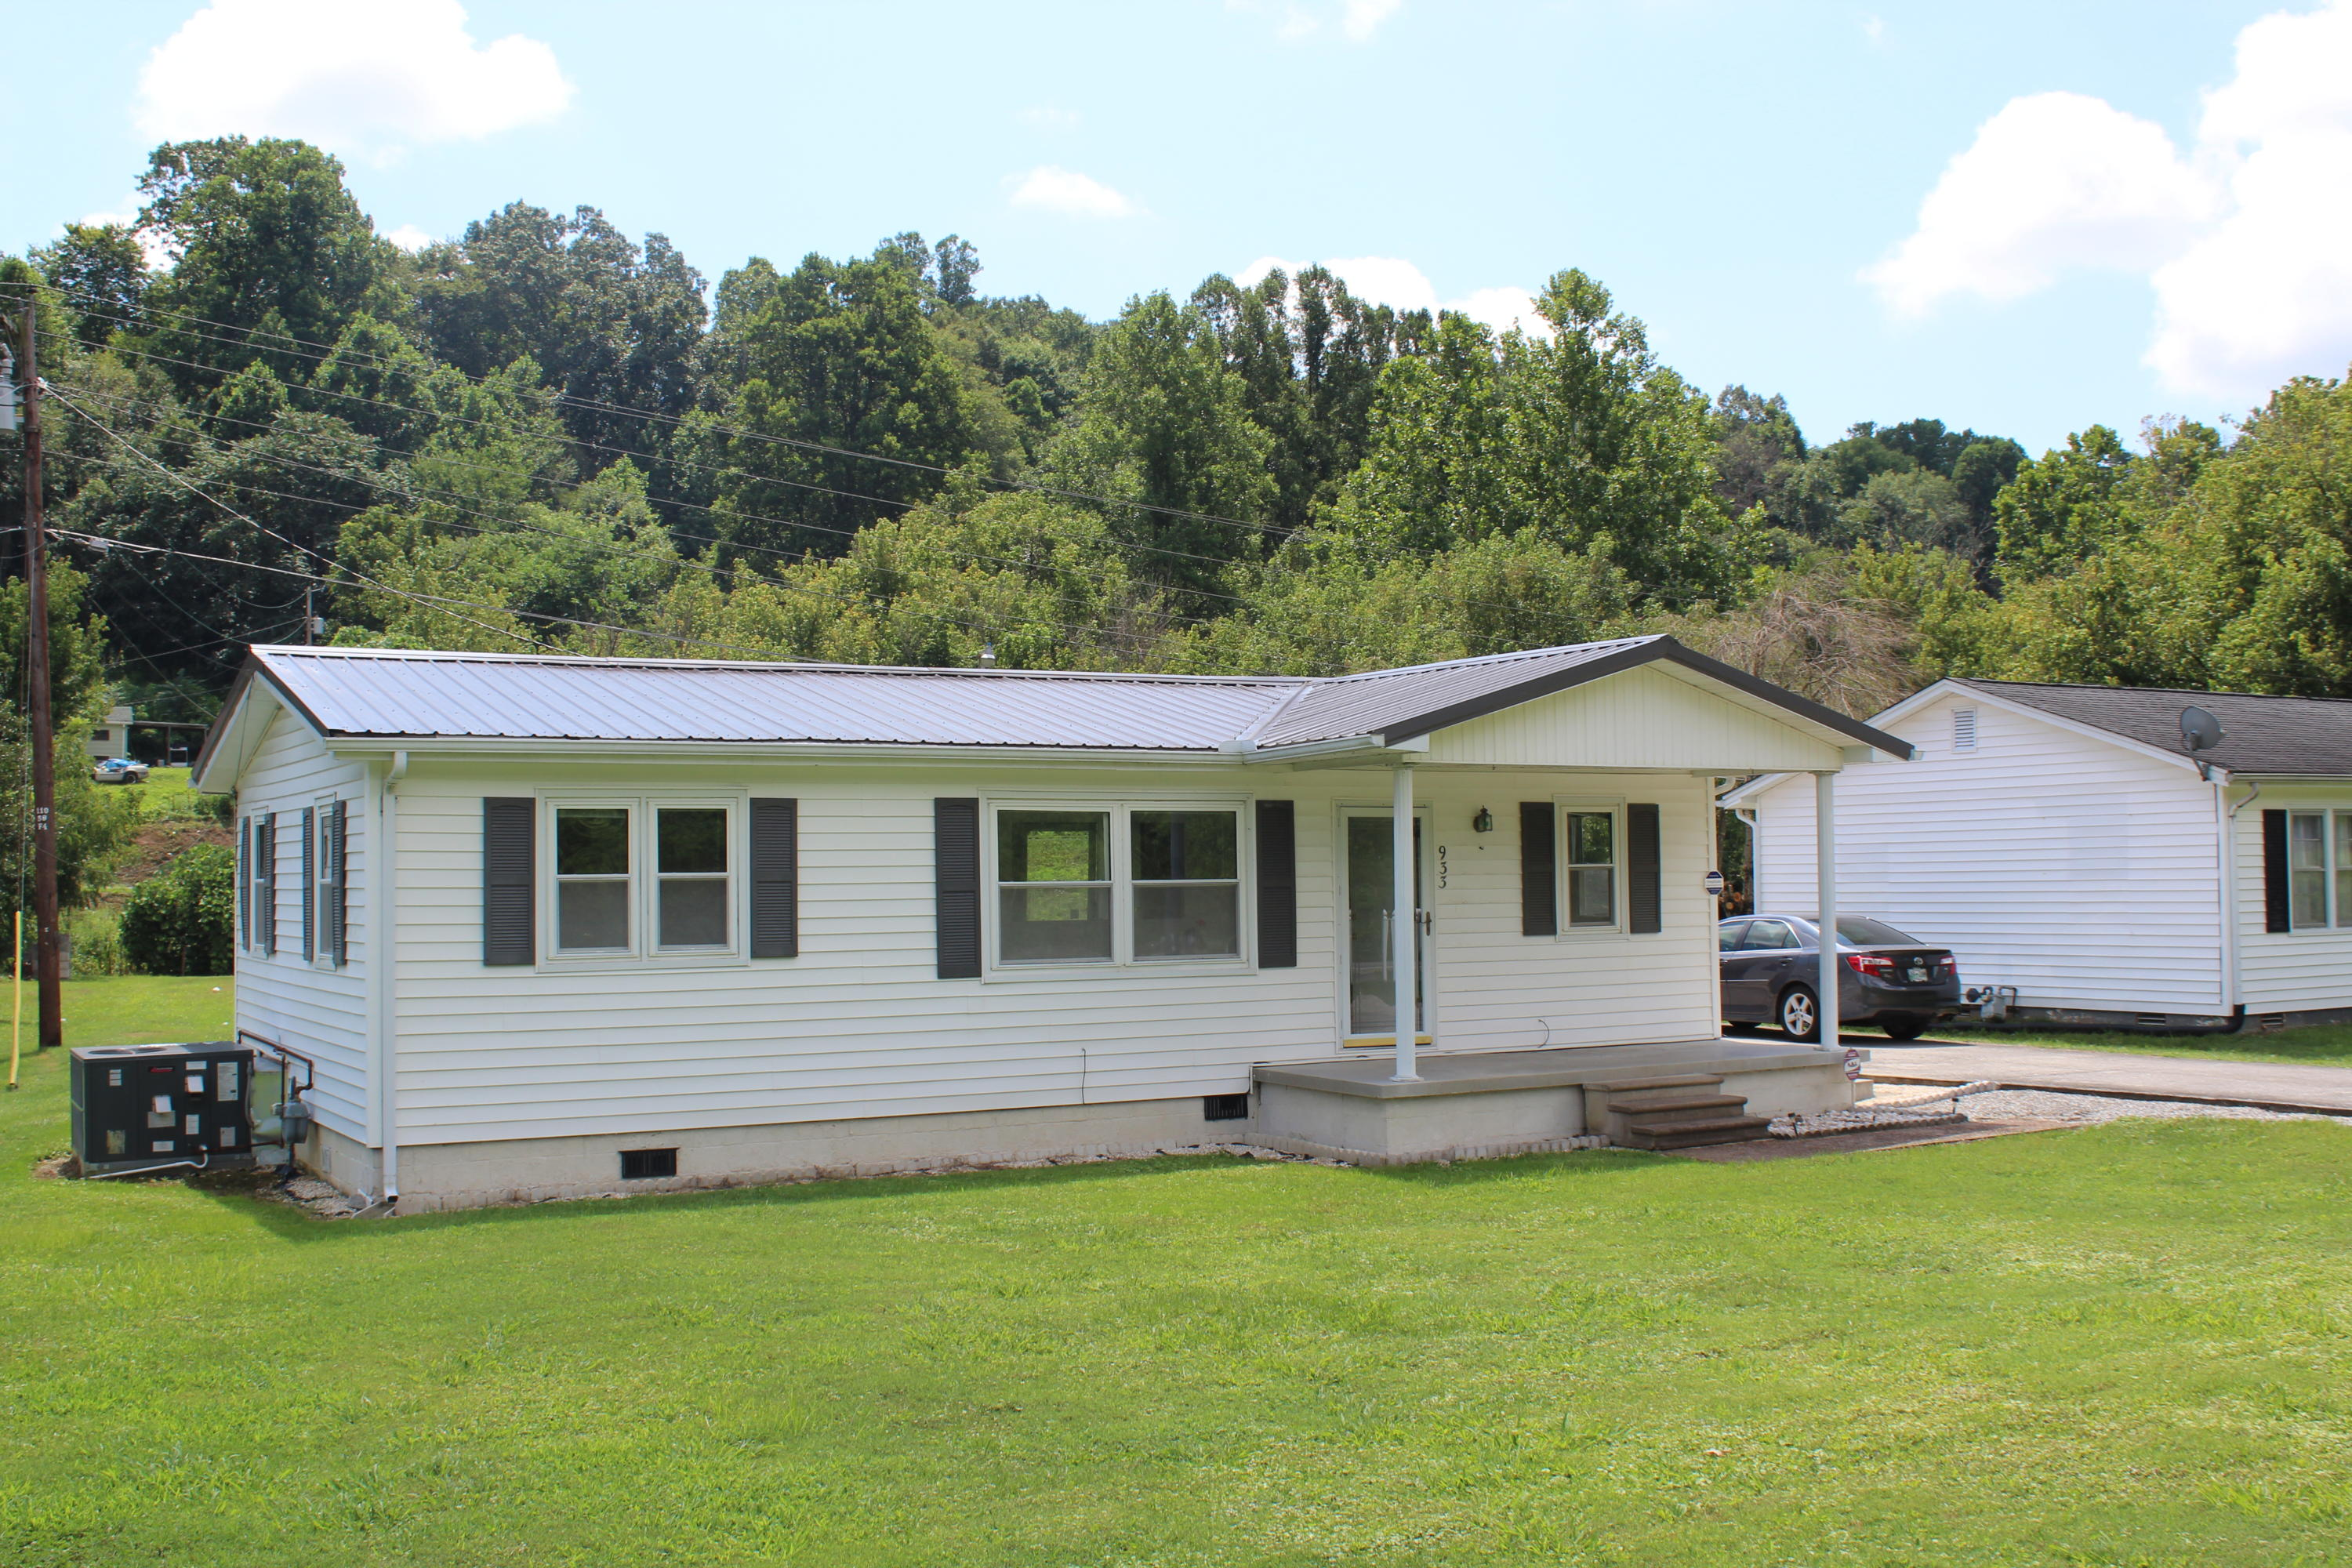 20190803173343696722000000-o Rocky Top anderson county homes for sale